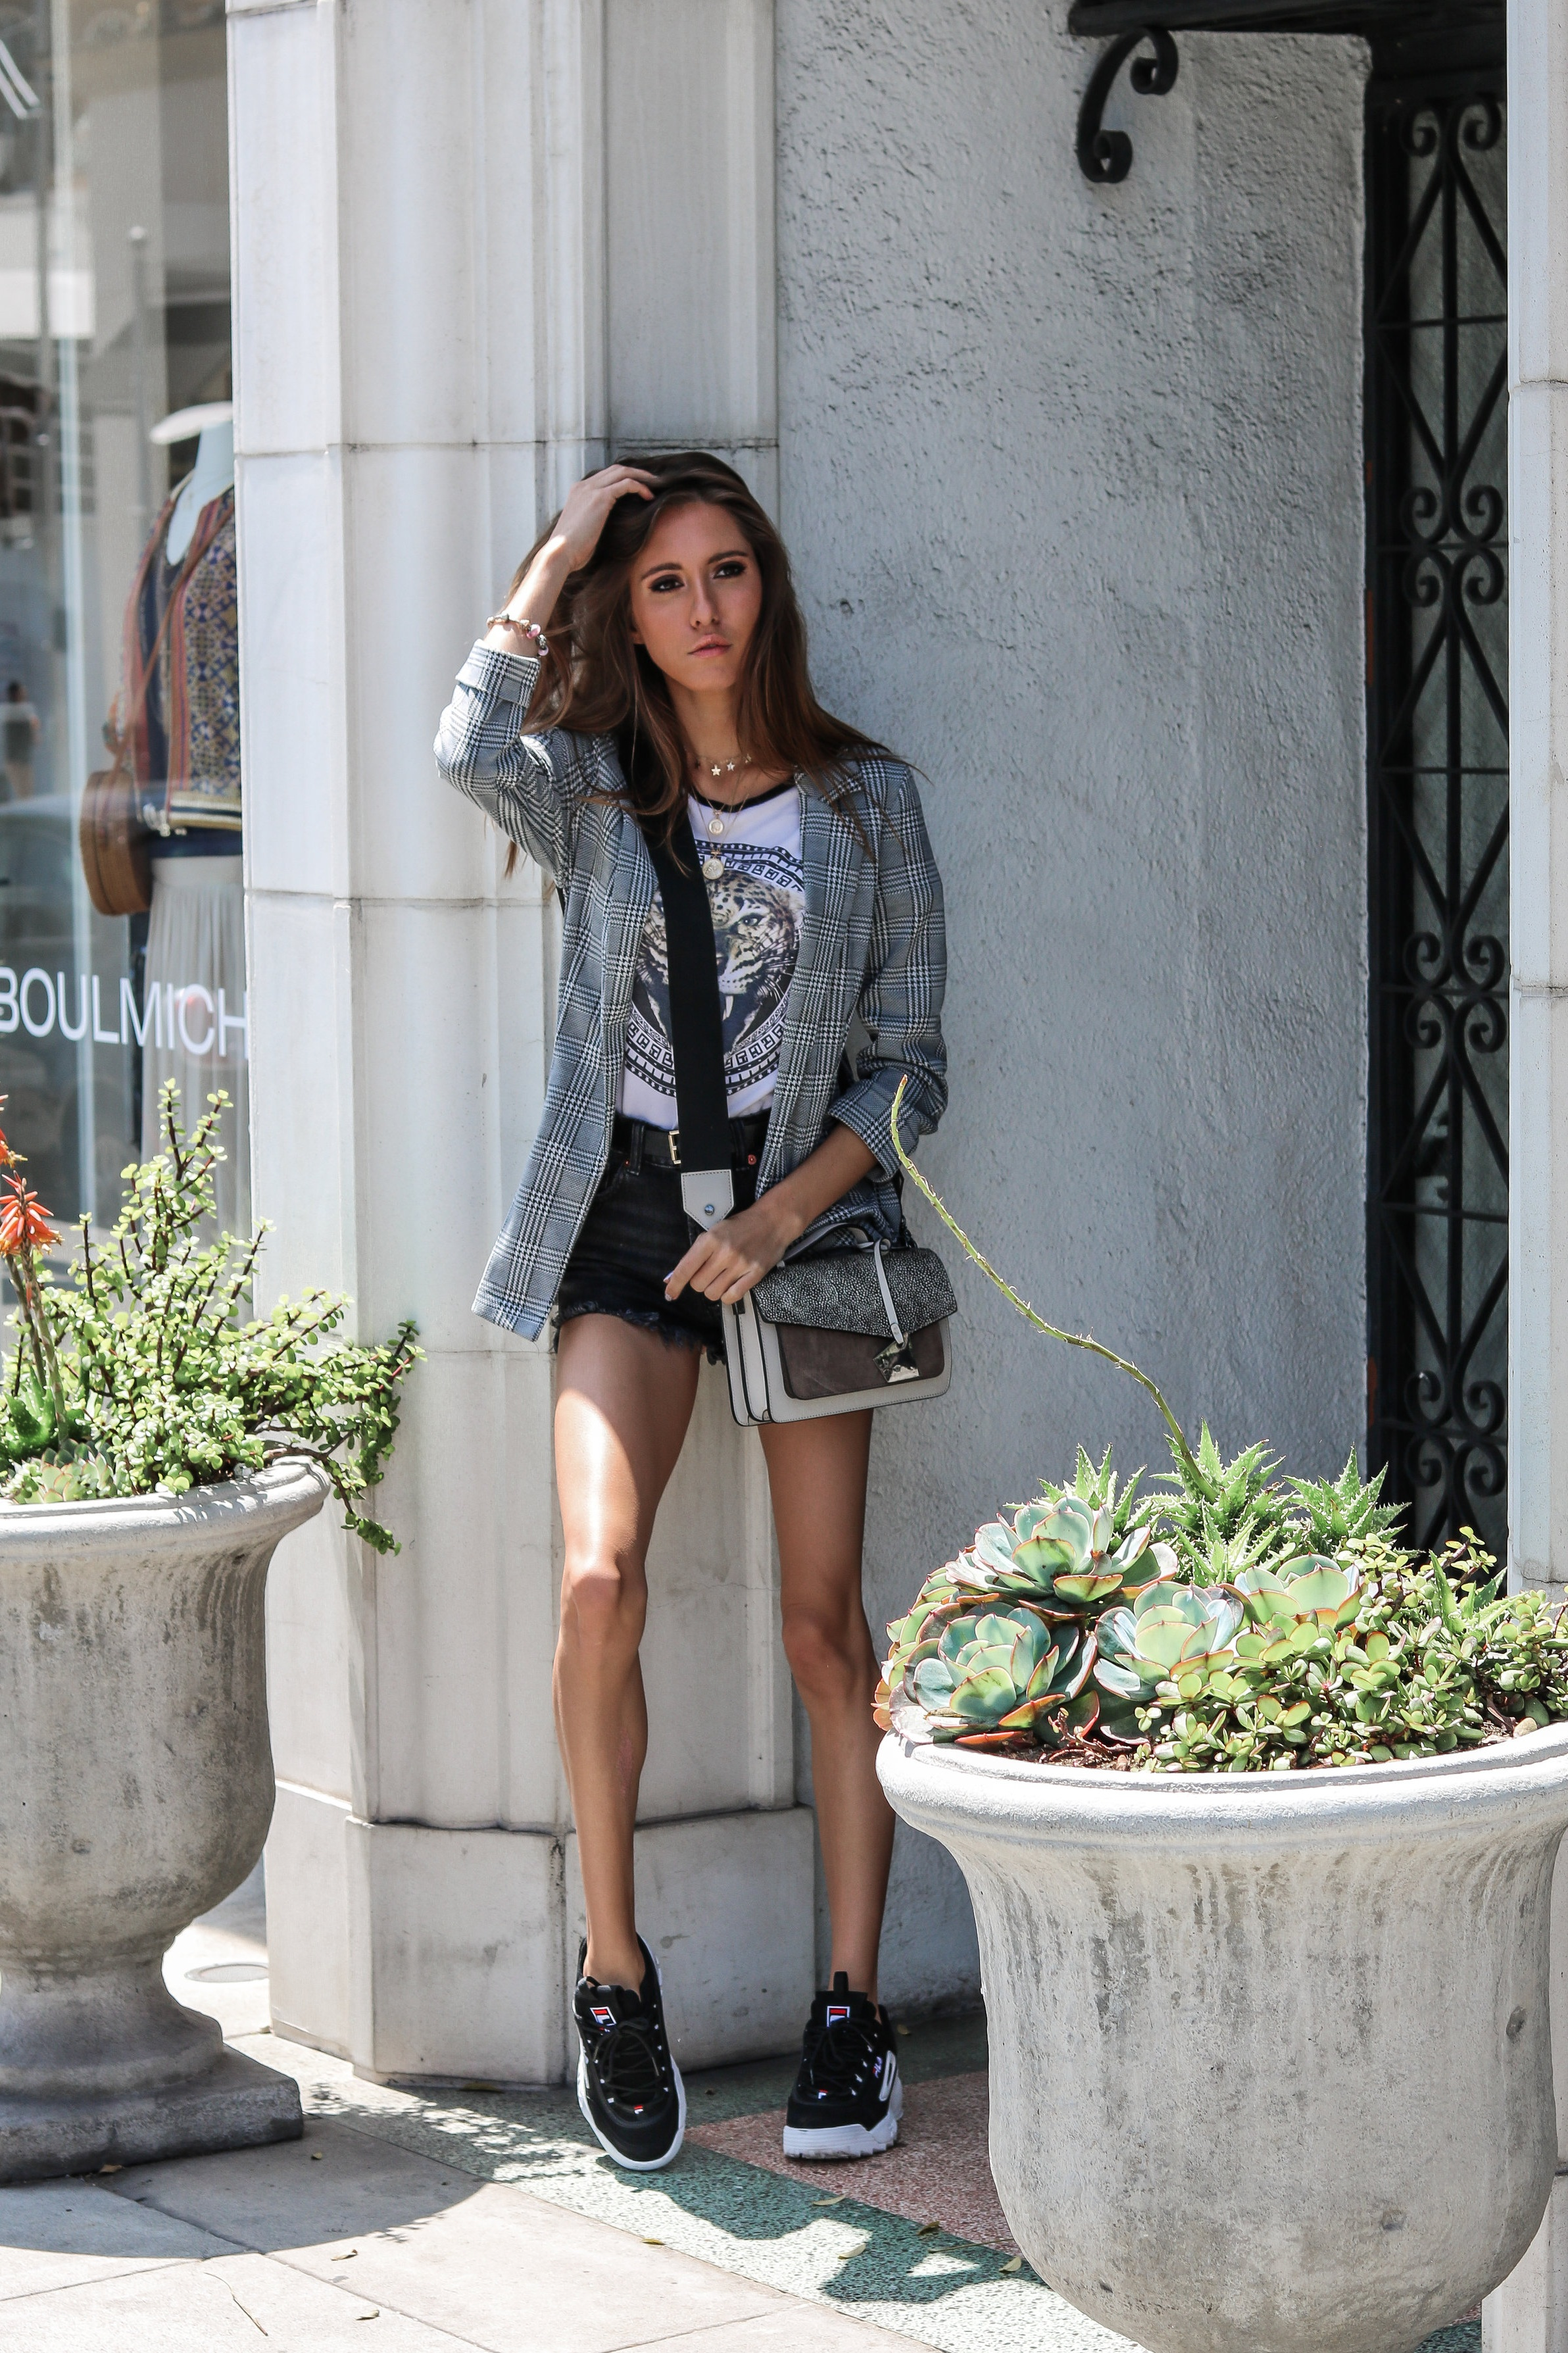 The+Hungarian+Brunette+summer+plaid+blazer+outfit+%282+of+6%29.jpg